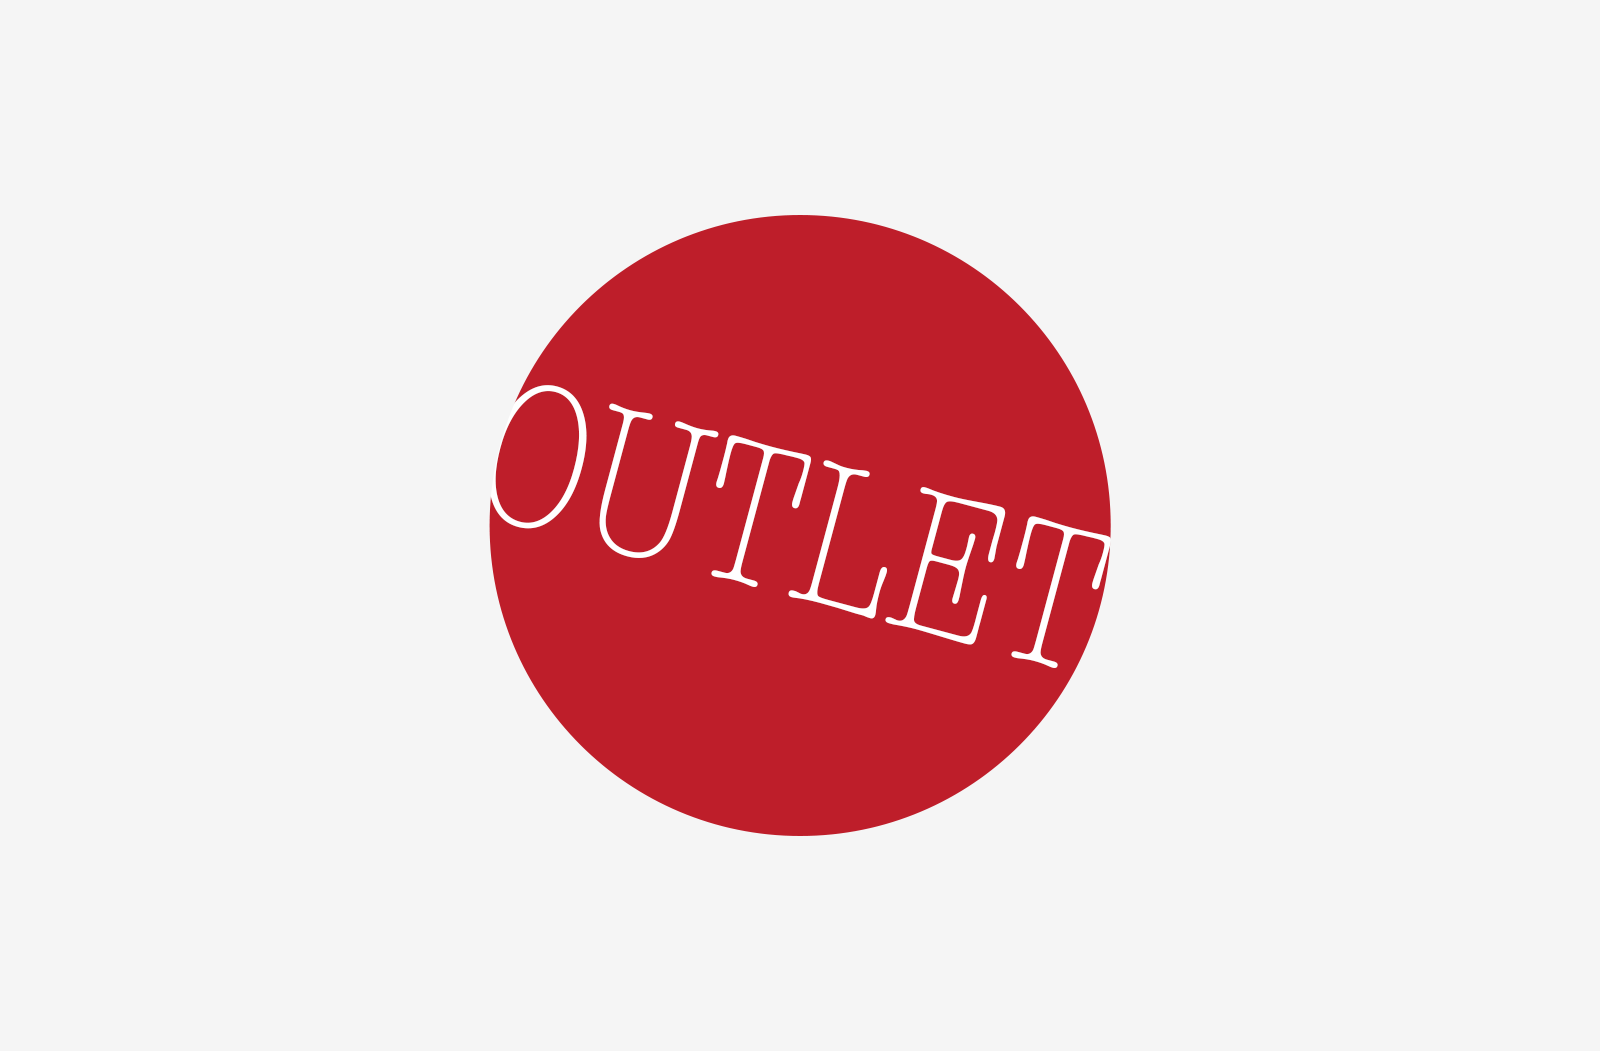 cwc-outlet1_logo.png